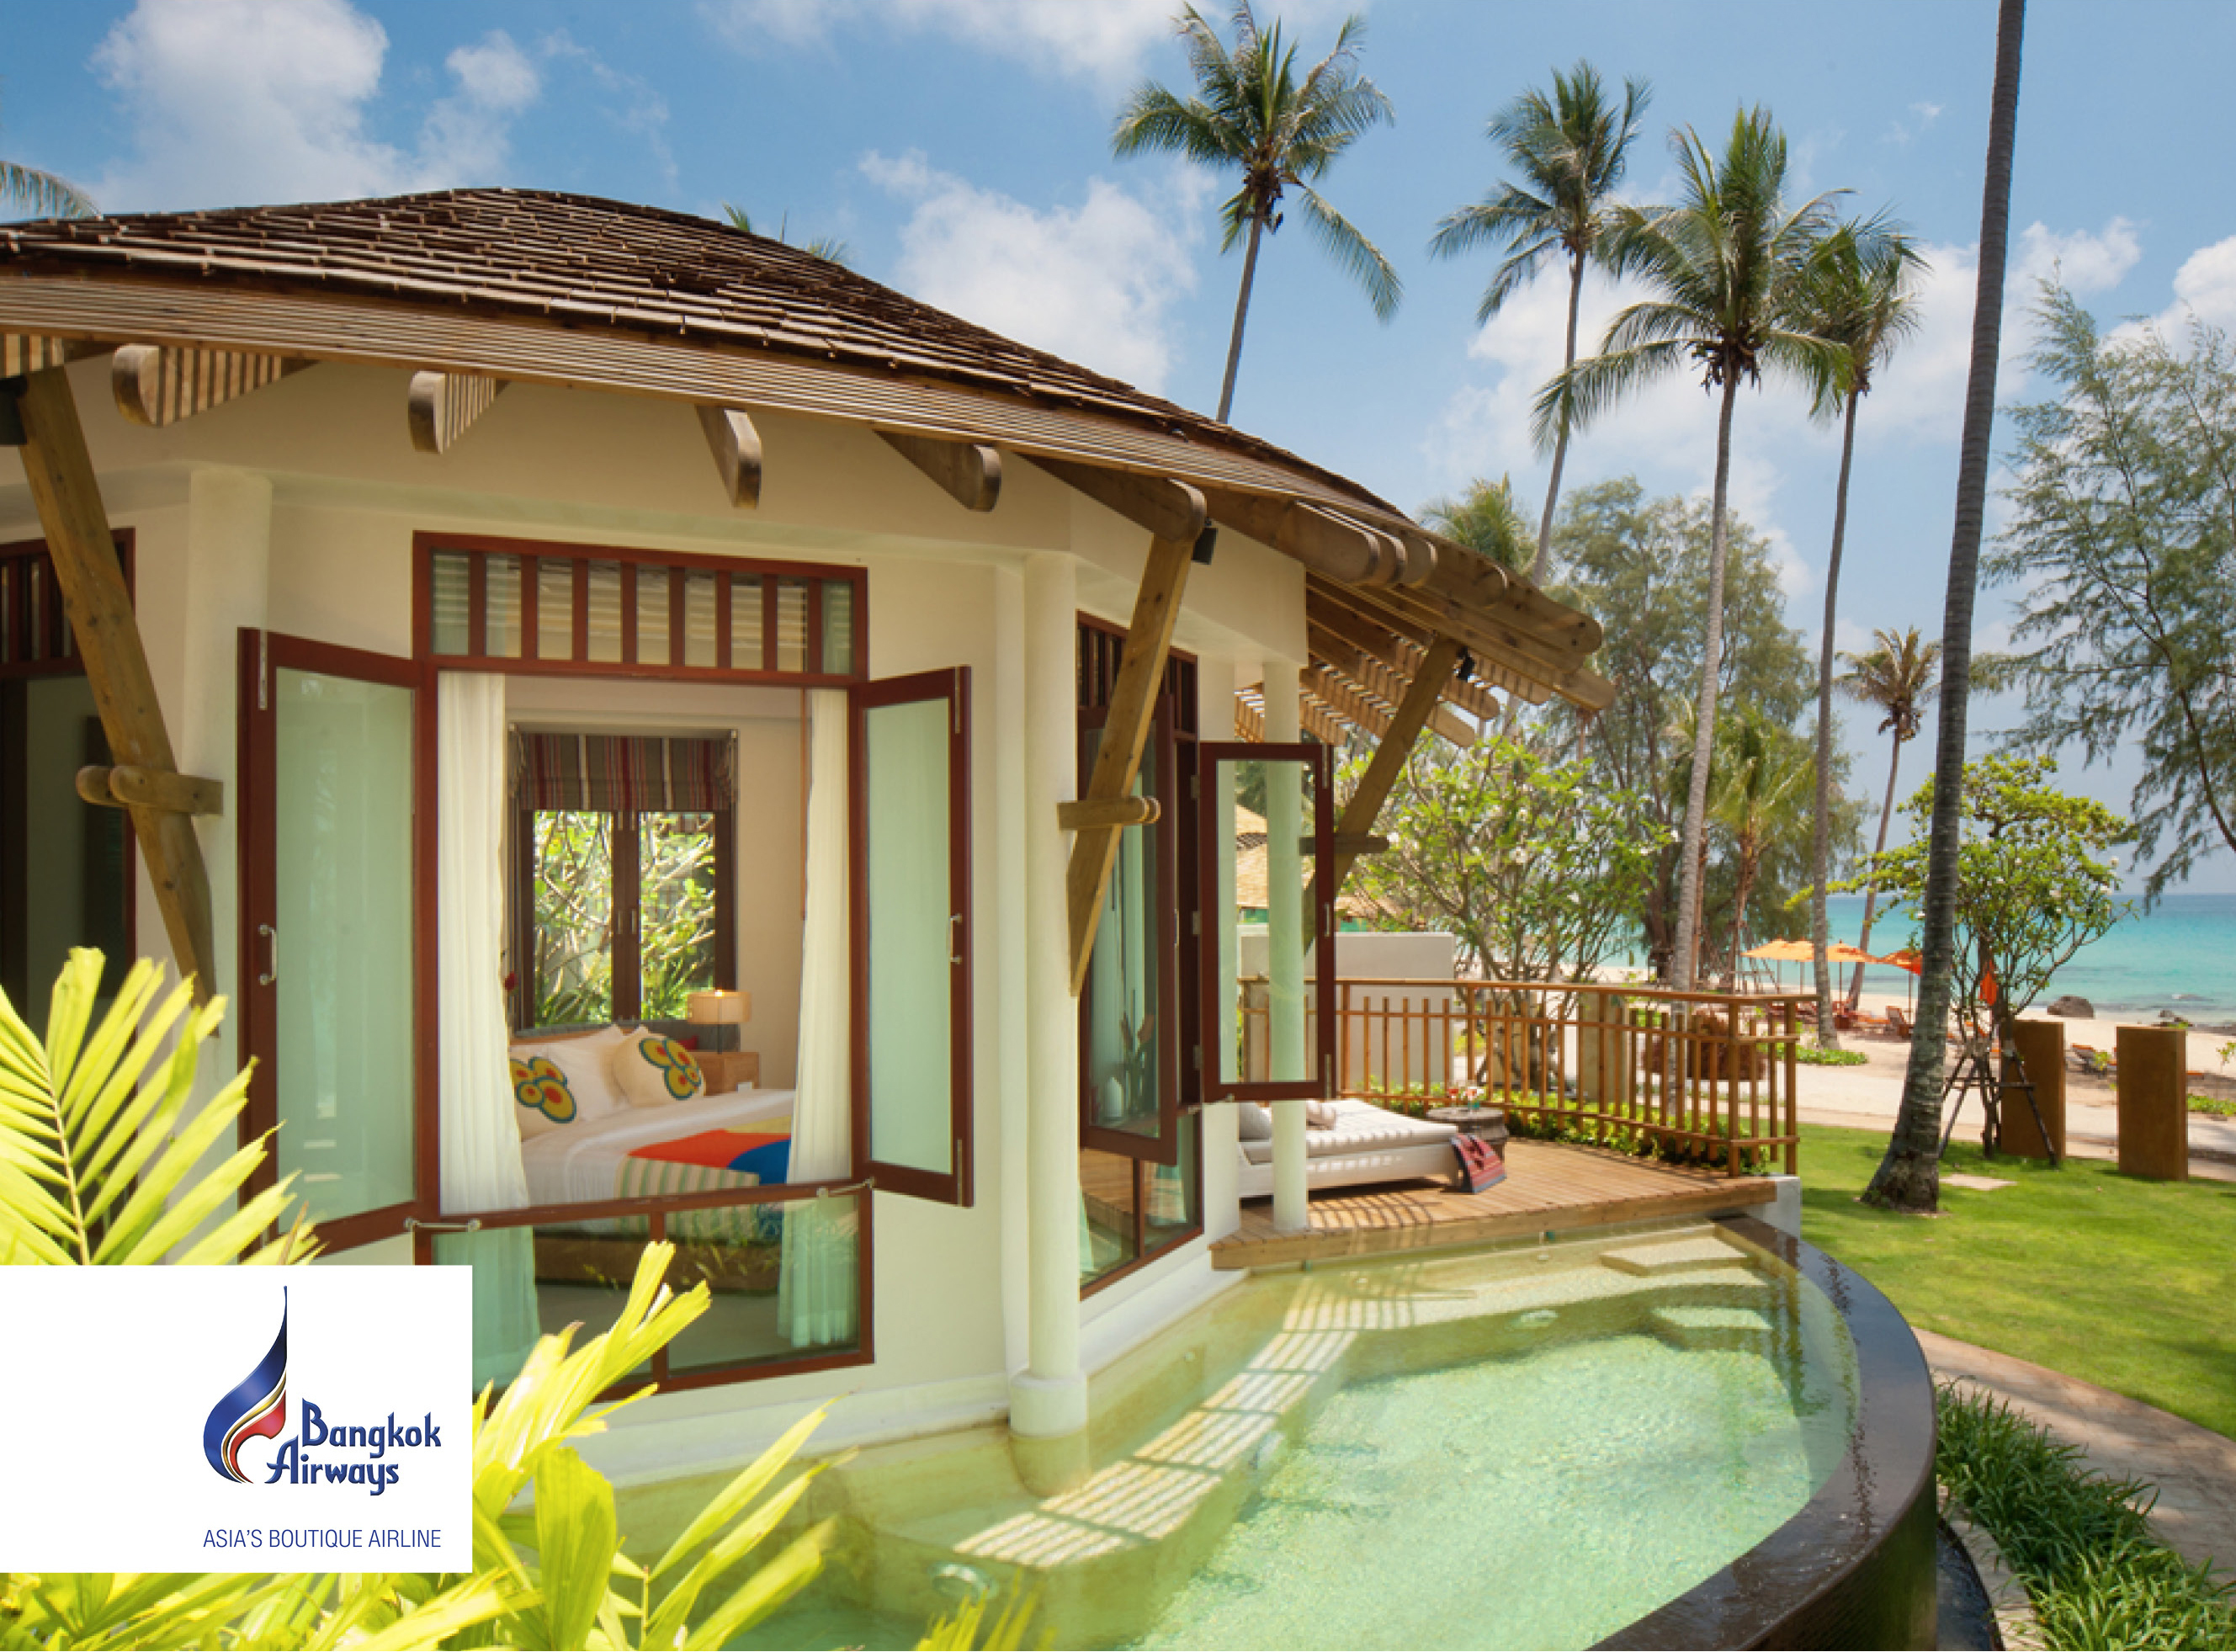 Bangkok Airways – Cham's House Koh Kood